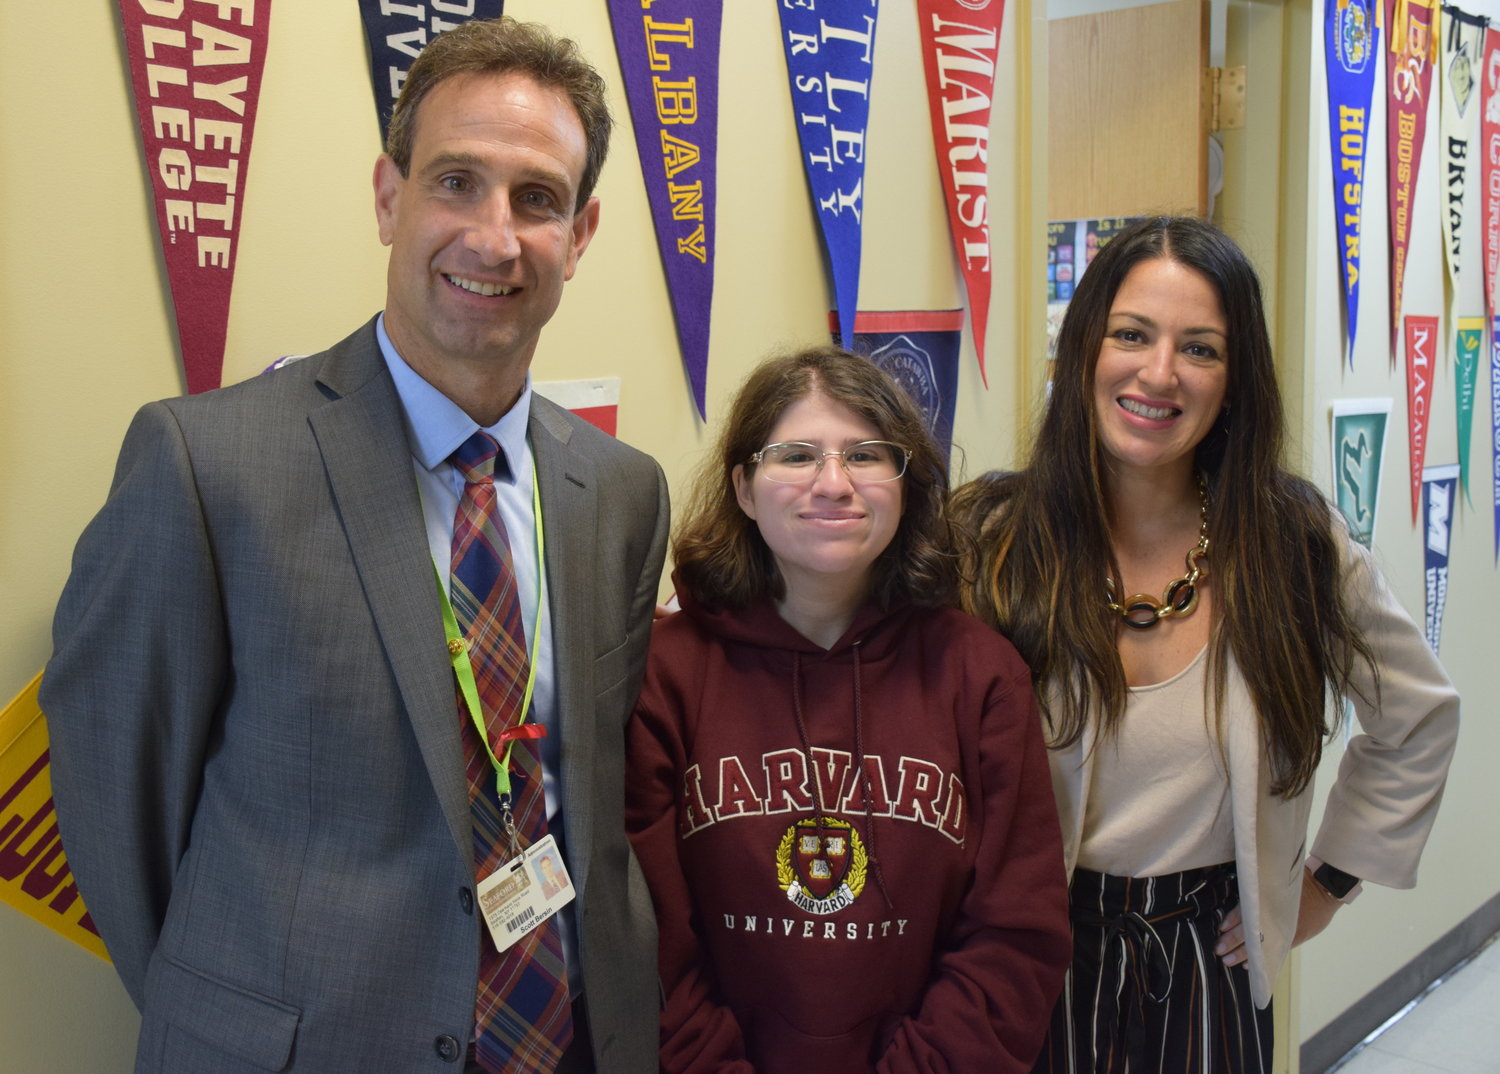 Seaford High School senior Jacqueline Galison, center, joined by Principal Scott Bersin and Assistant Principal Jennifer Bisulca, completed the summer Pre-College Program at Harvard University.